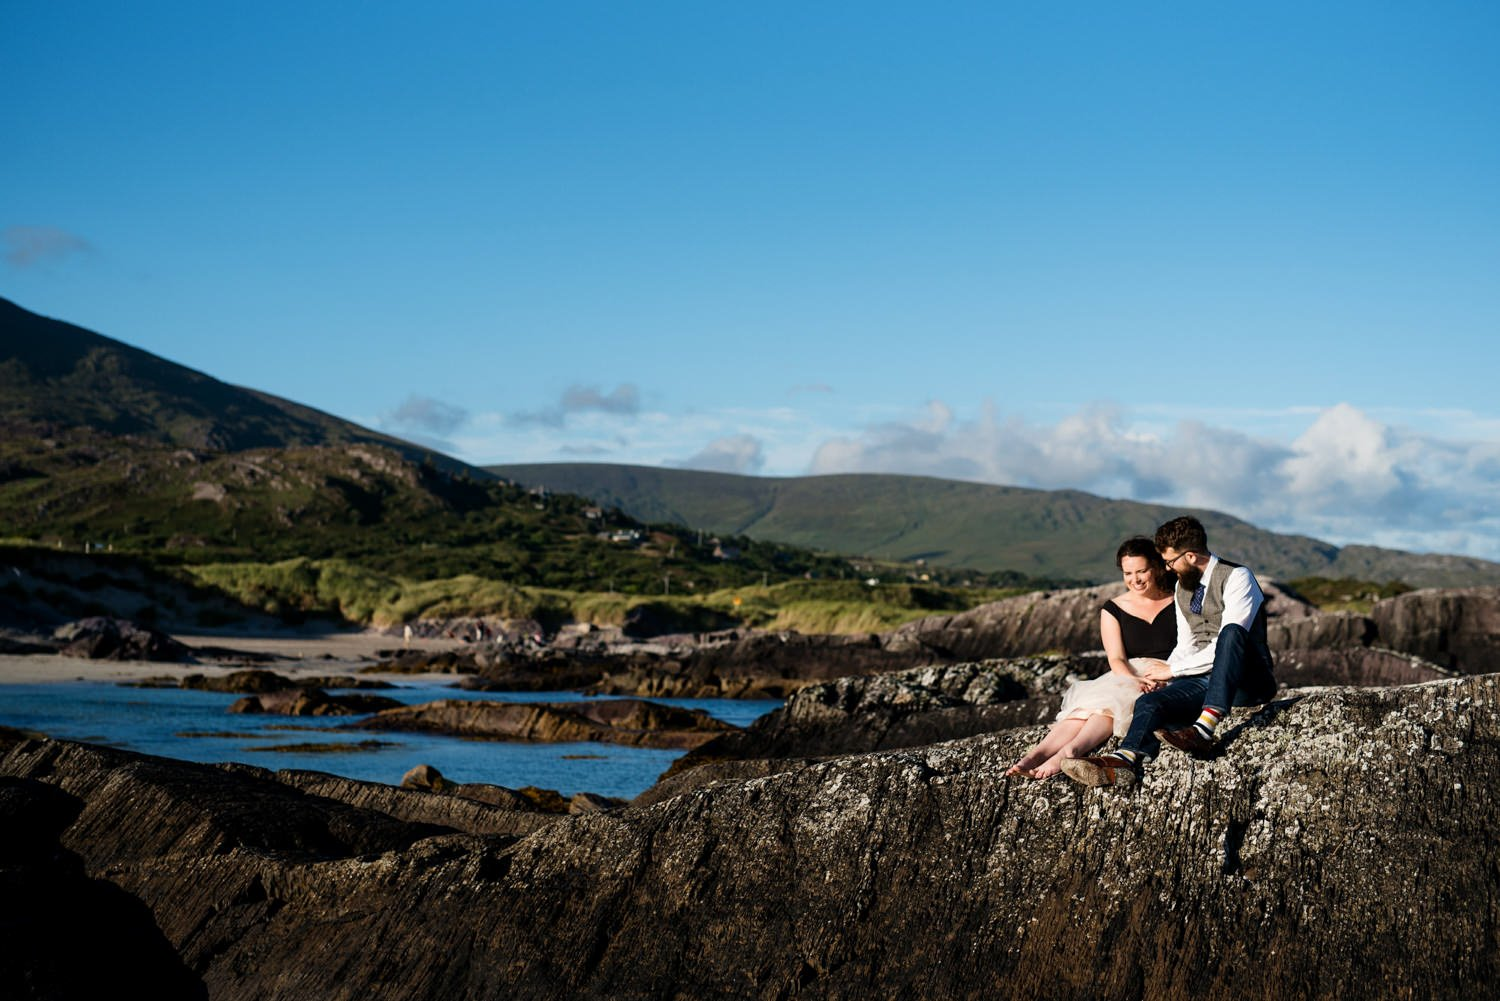 sarah-and-daniel-derryanne-engagement-photography-kerry-wedding-photographer-ireland-16